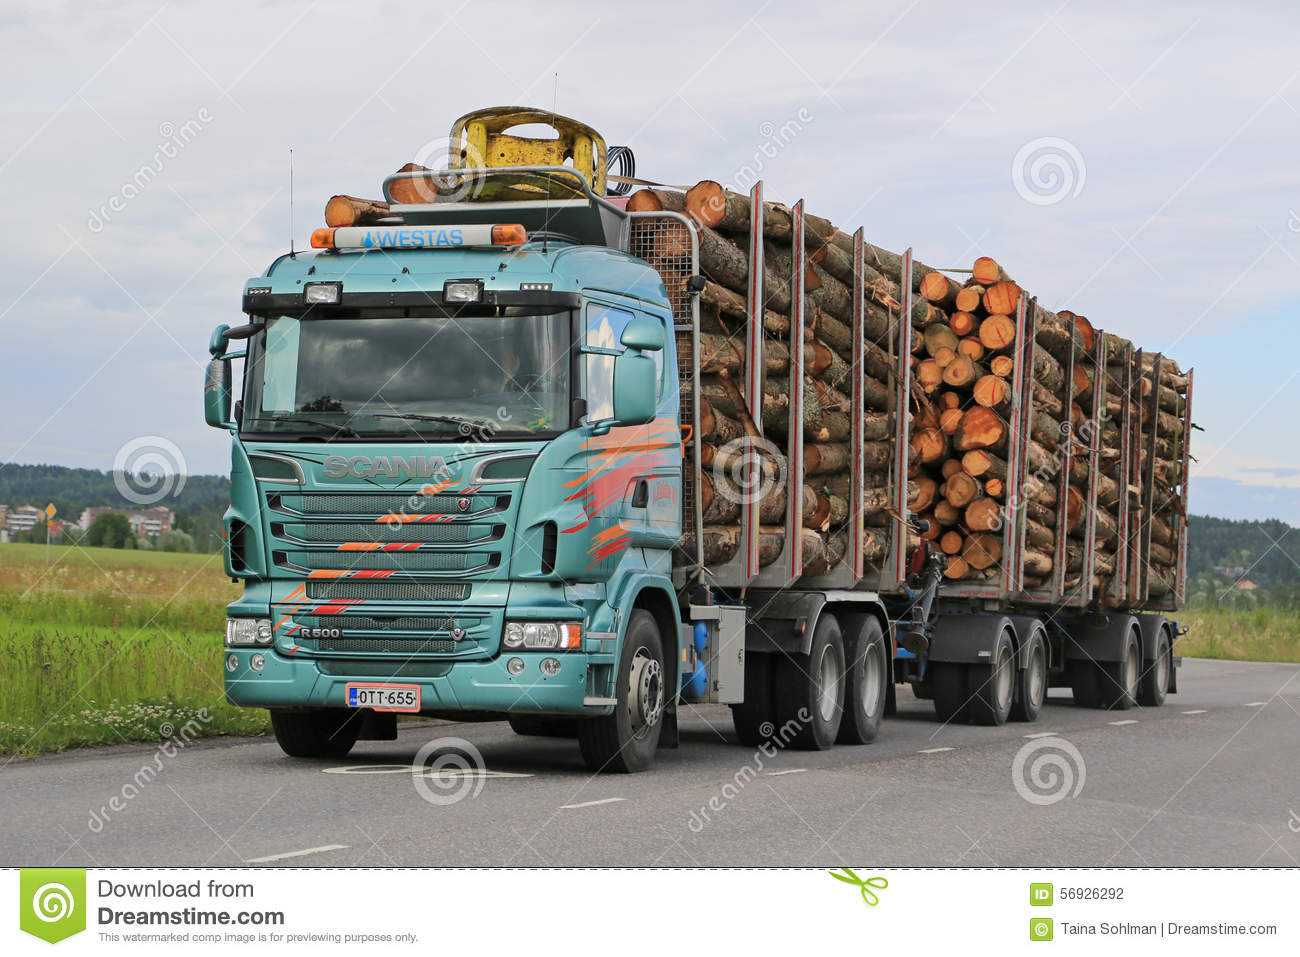 Scania R500 Logging Truck with Full Load